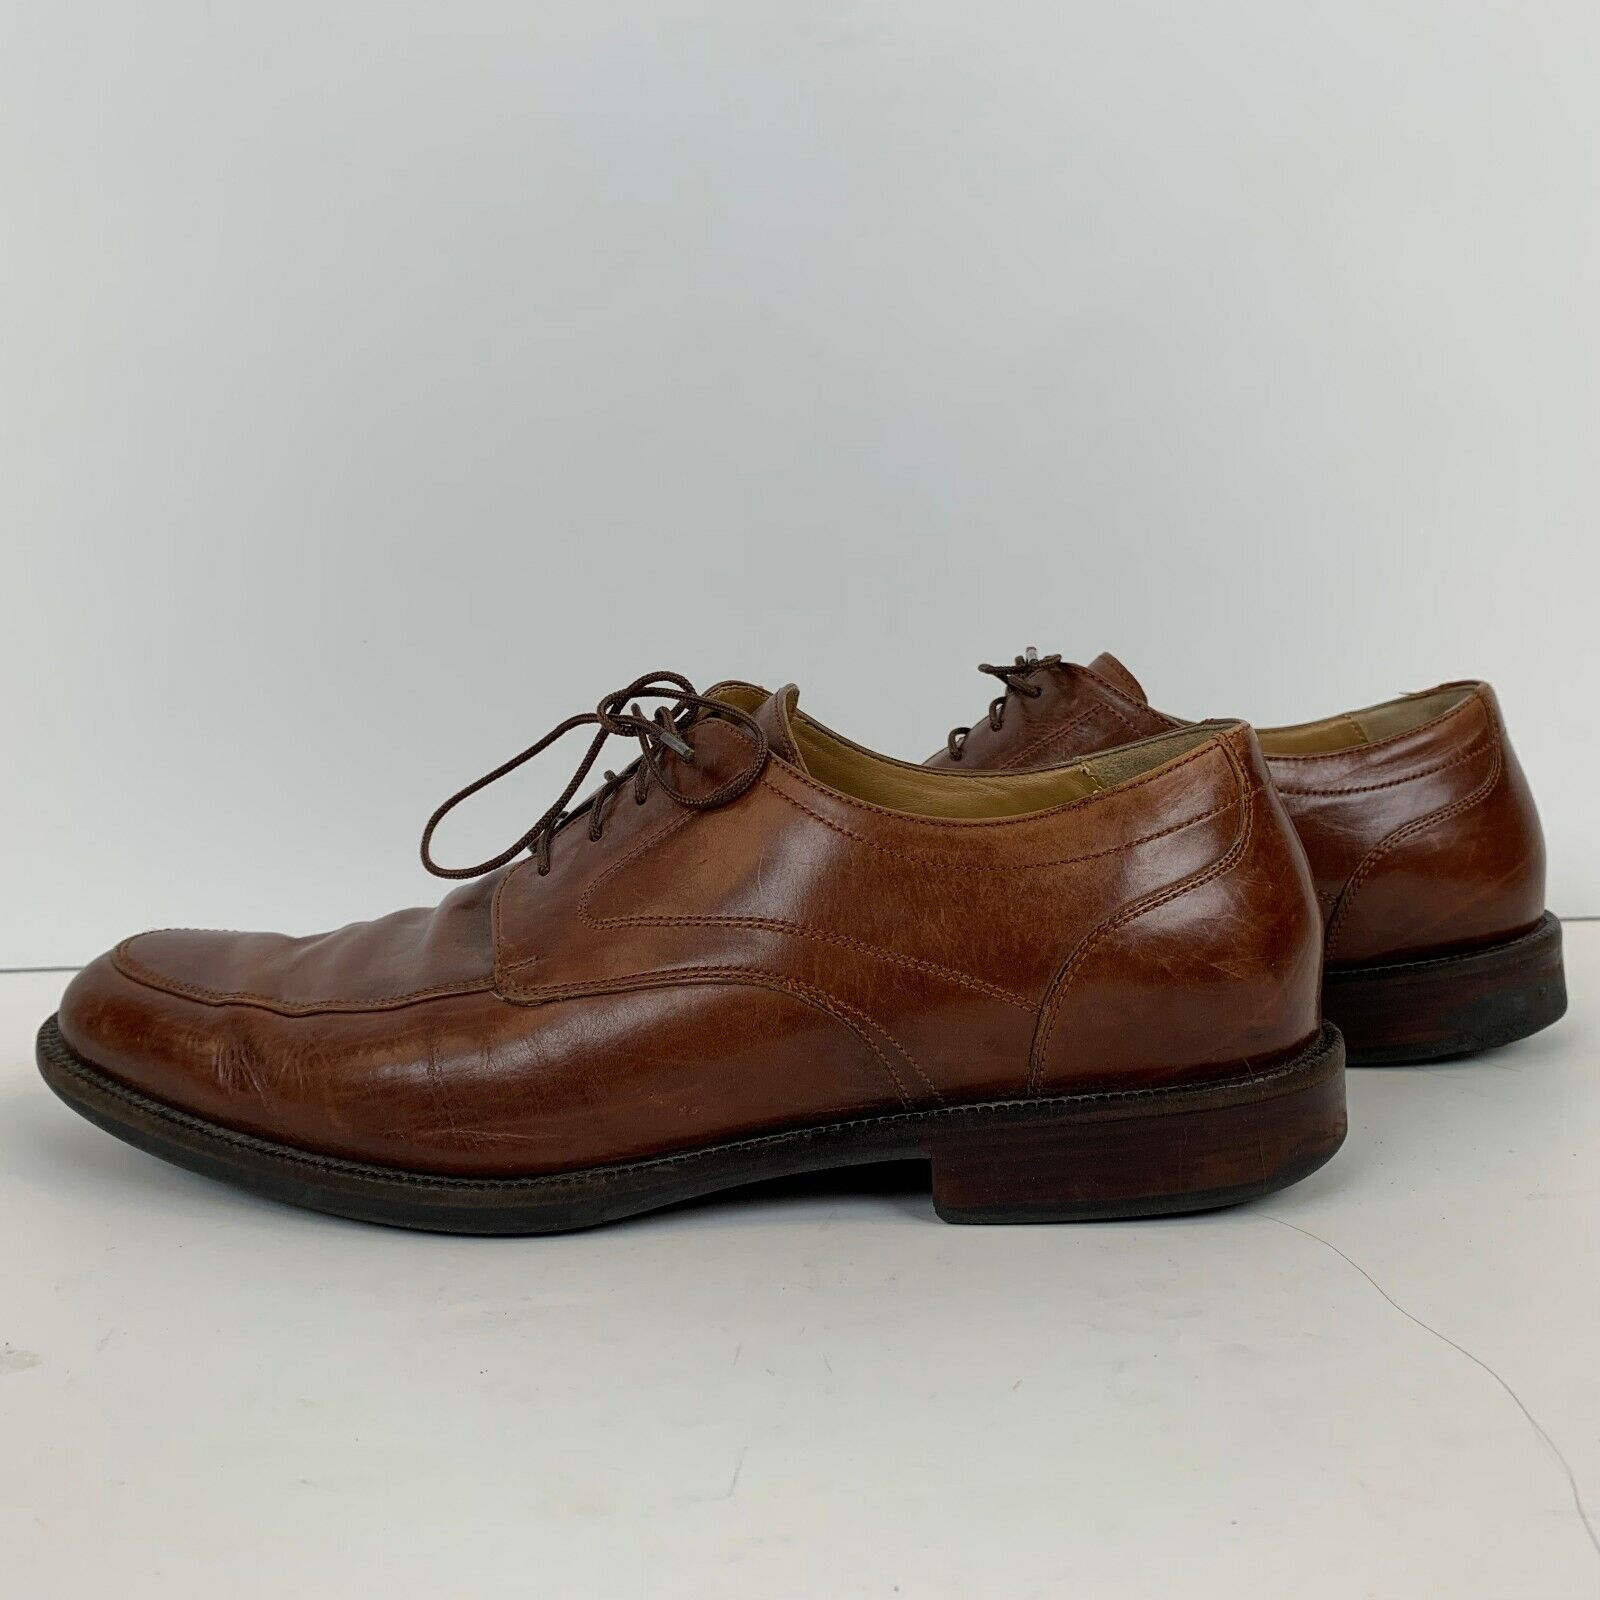 Johnston And Murphy Mens Sheepskin Lace Up Oxfords Size 9.5M Brown 5913502